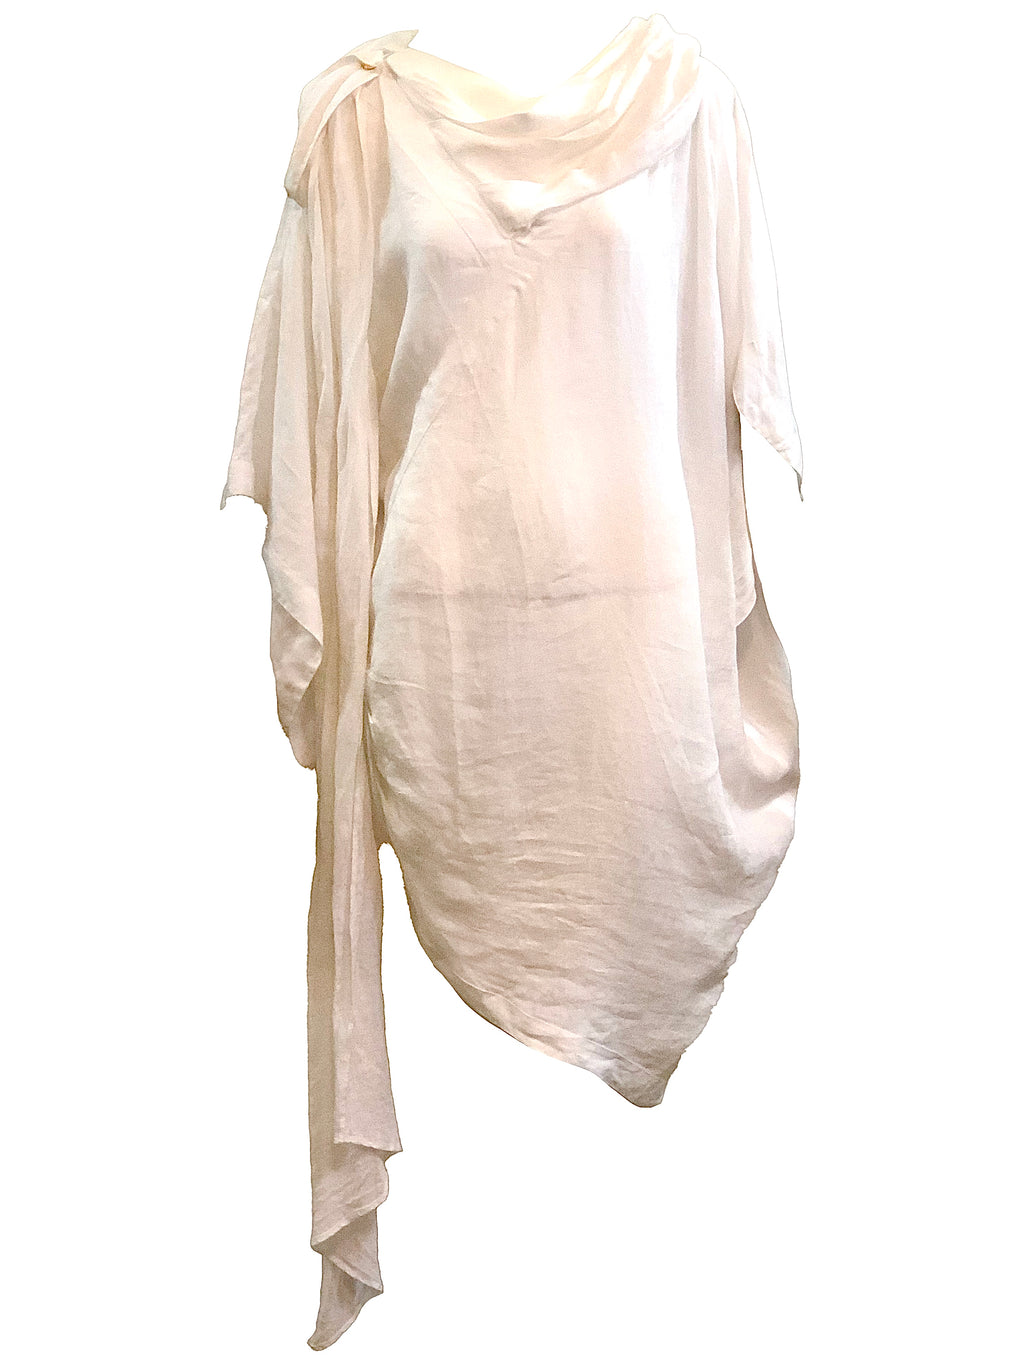 Claude Montana 80s White LInen Tunic FRONT 1 of 4